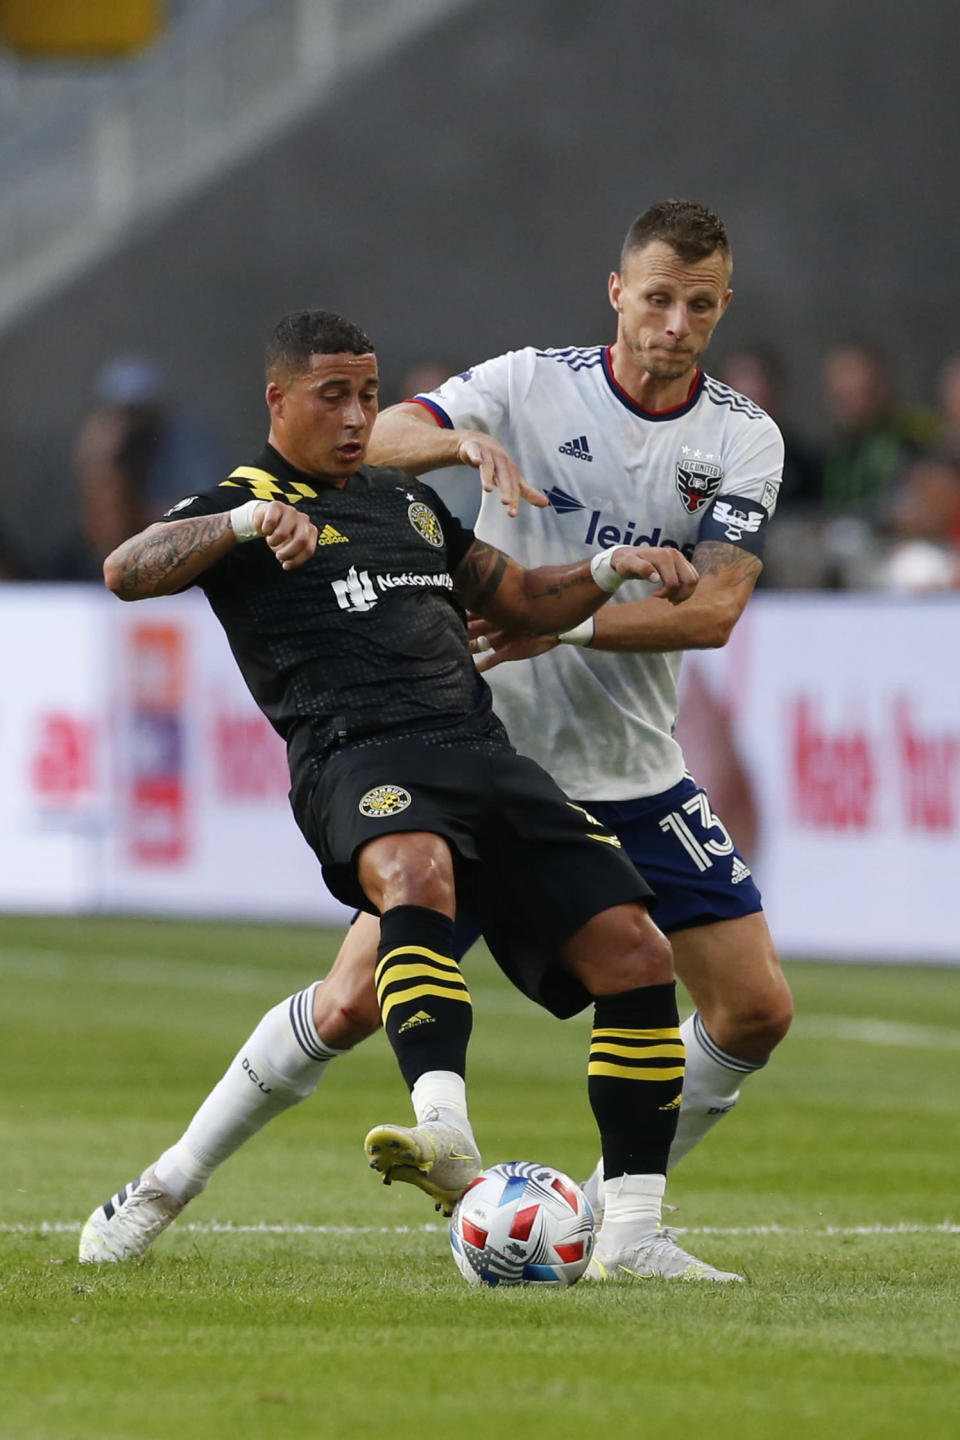 Columbus Crew's Erik Hurtado, left, and D.C. United's Frederic Brillant vie for the ball during the first half of an MLS soccer match Wednesday, Aug. 4, 2021, in Columbus, Ohio. (AP Photo/Jay LaPrete)